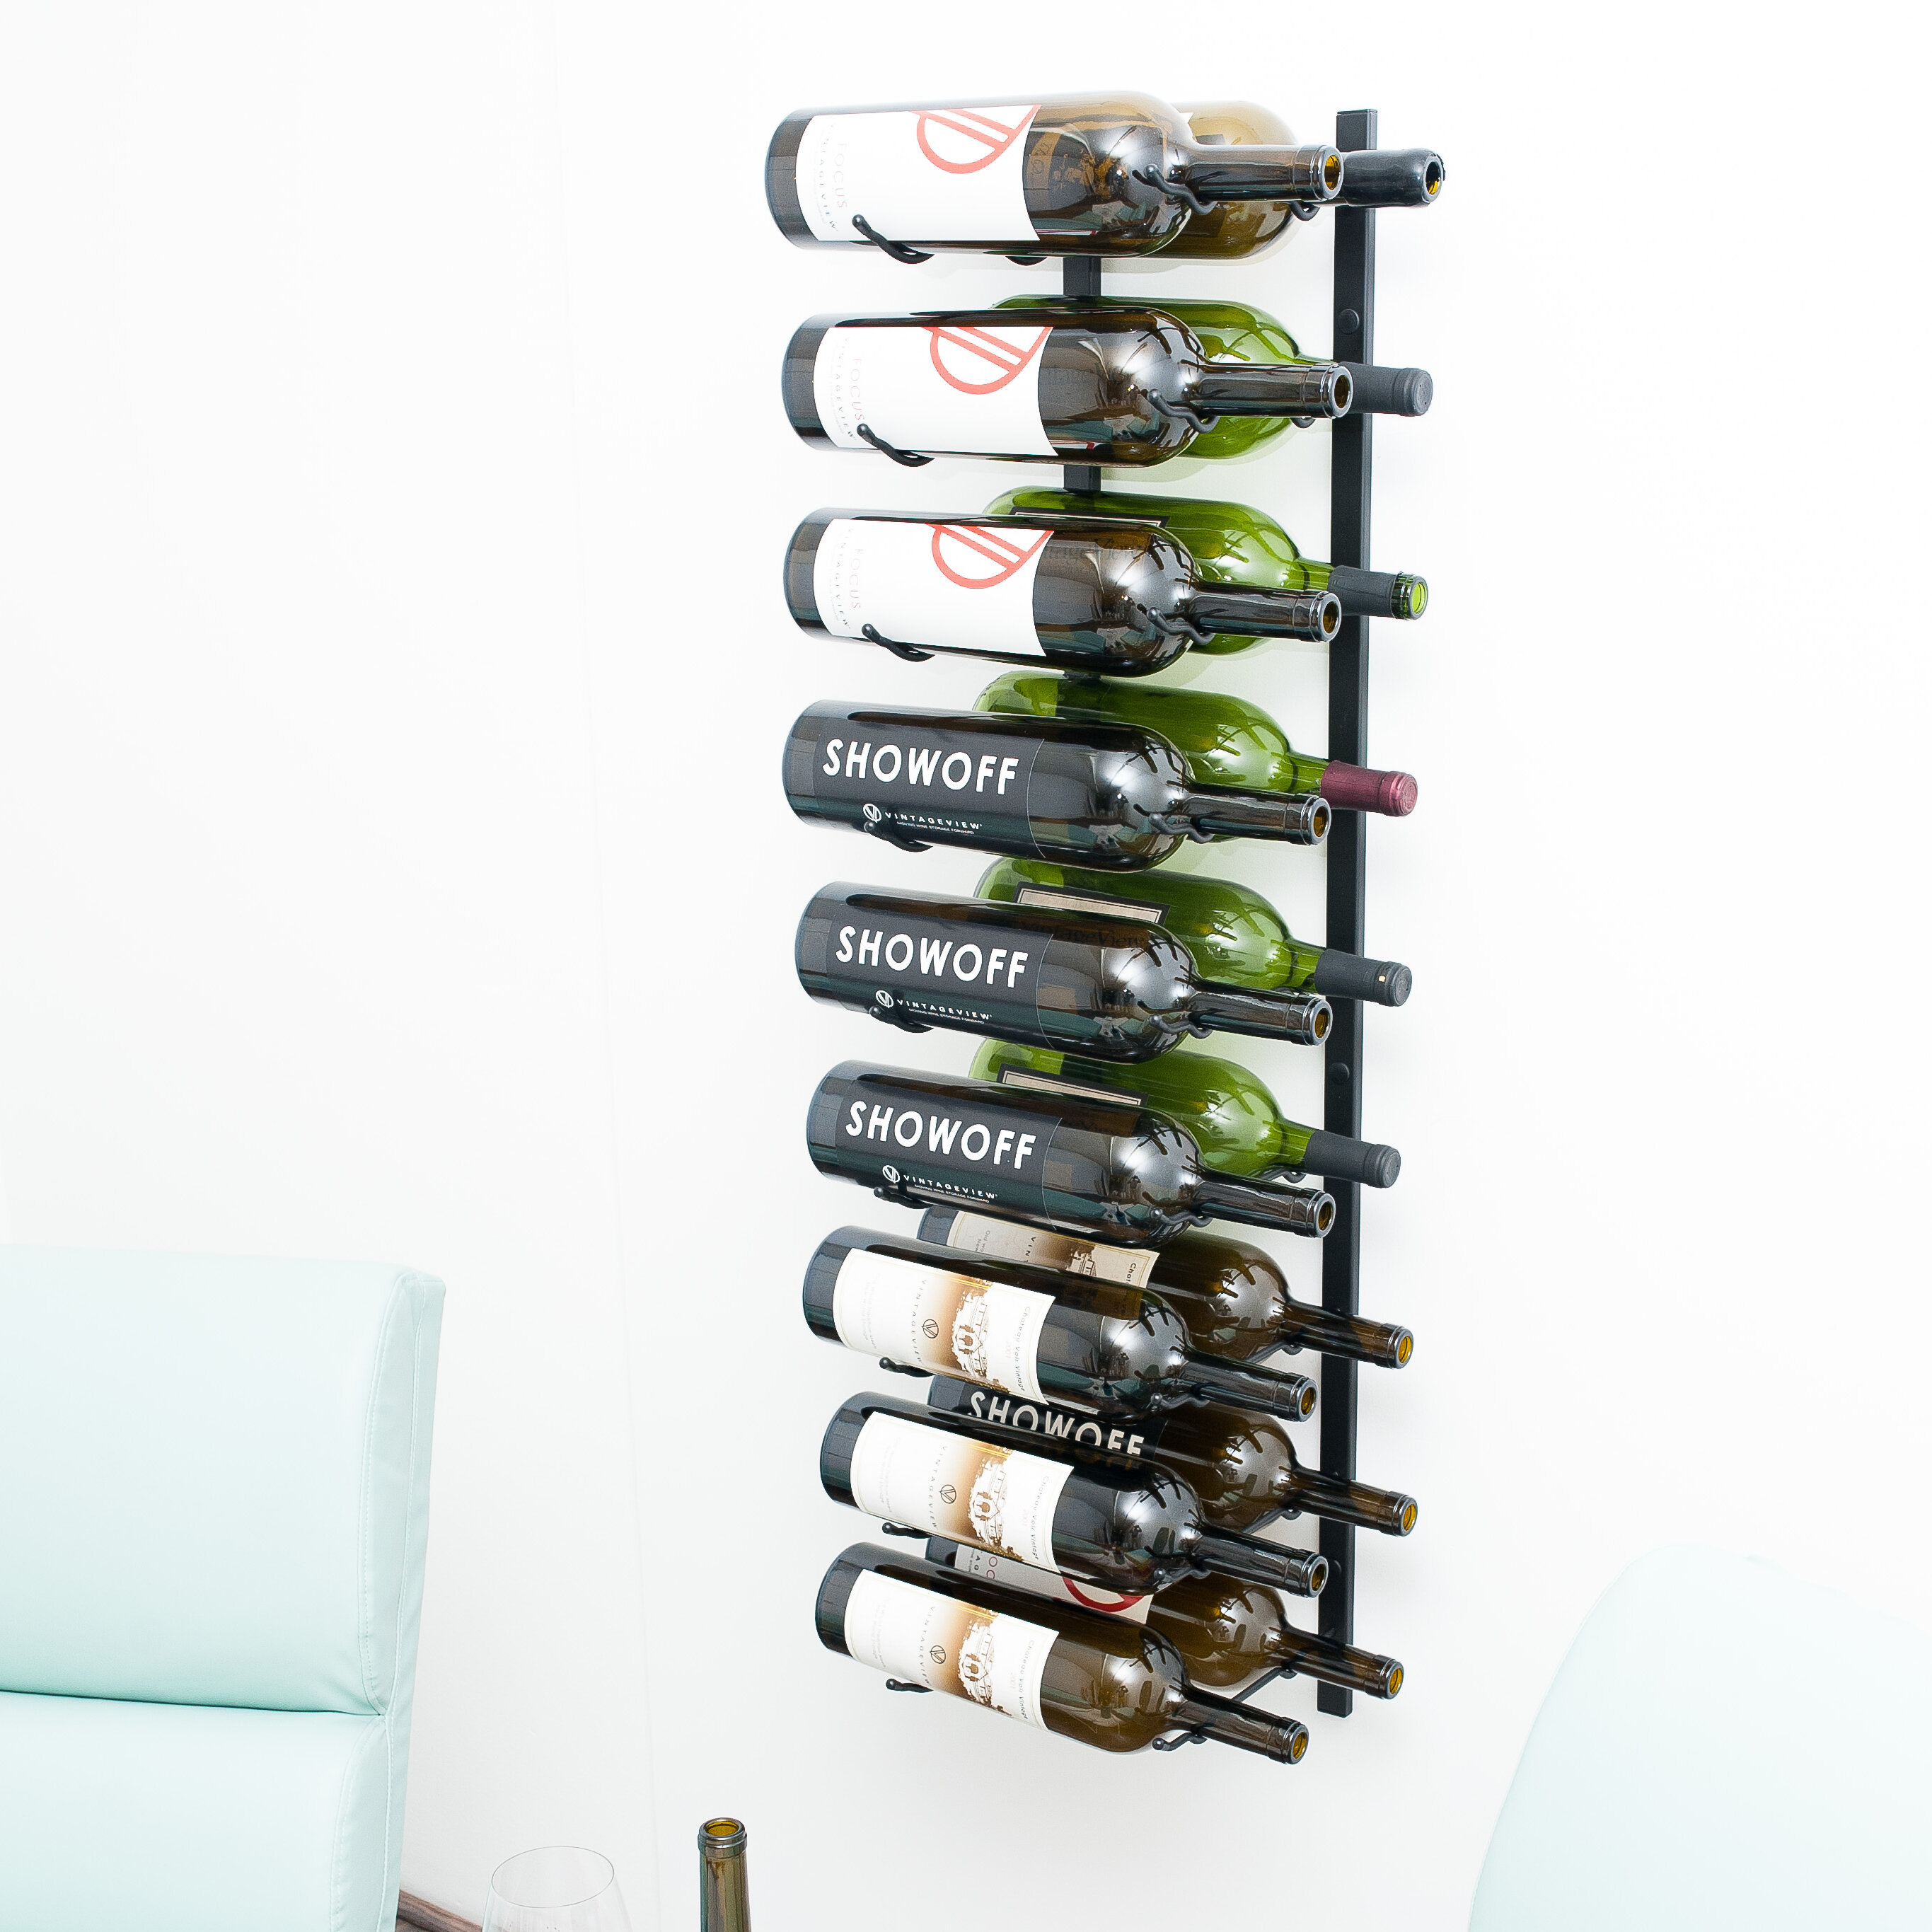 18 Bottle Wall Mounted Wine Rack VintageView Wall Series Stylish Modern Wine Storage with Label Forward Design Satin Black